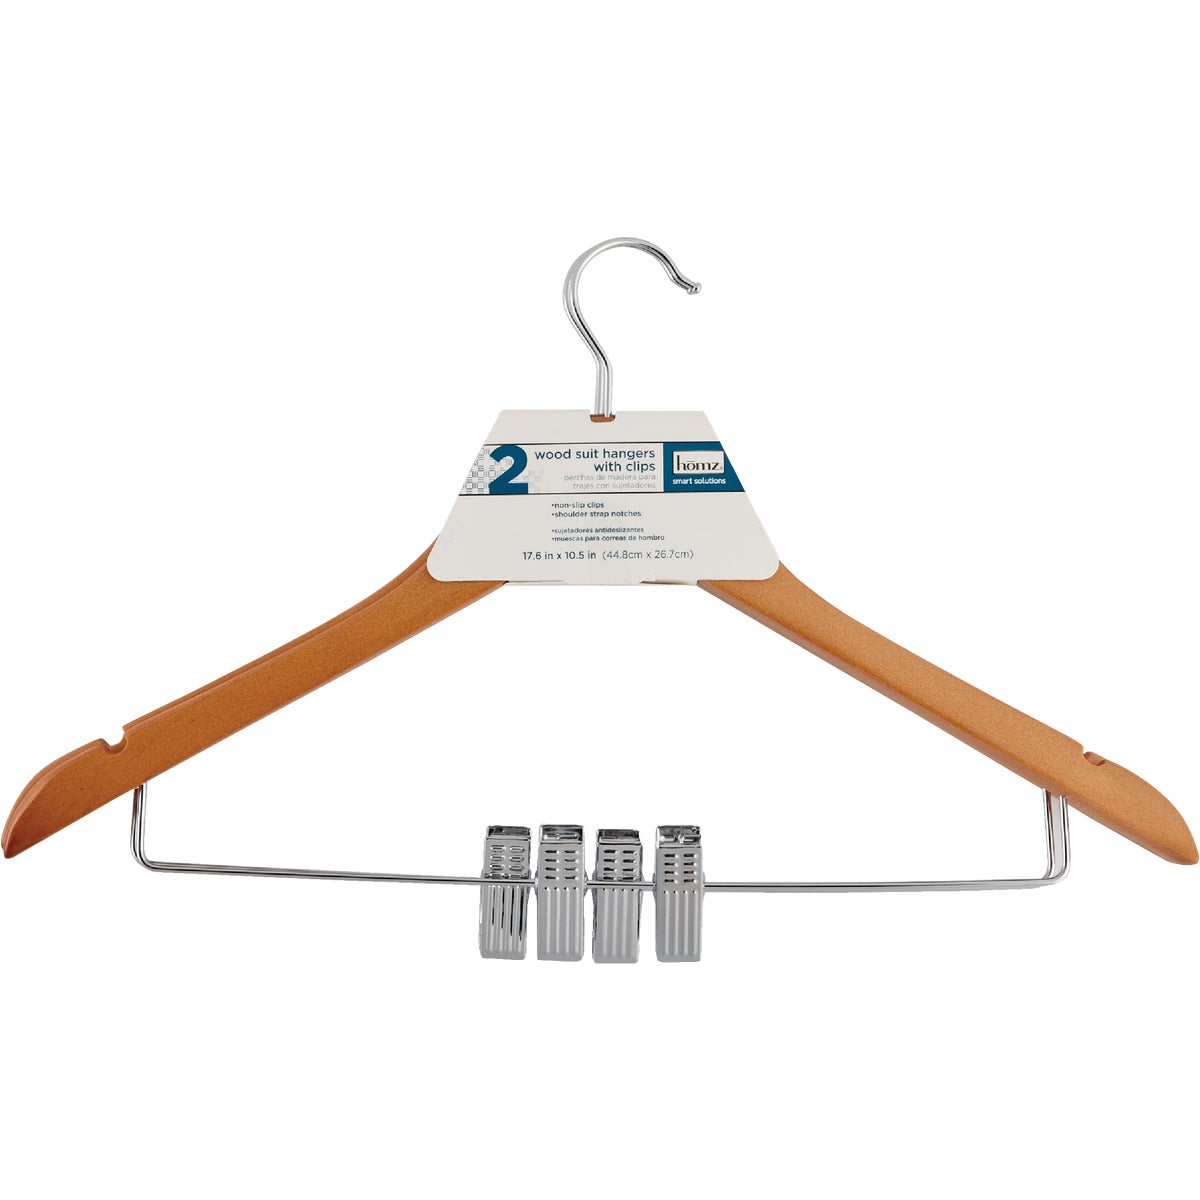 WOOD SUIT HANGER W/CLIPS - 8657WN2.18 by Homz  Seymour